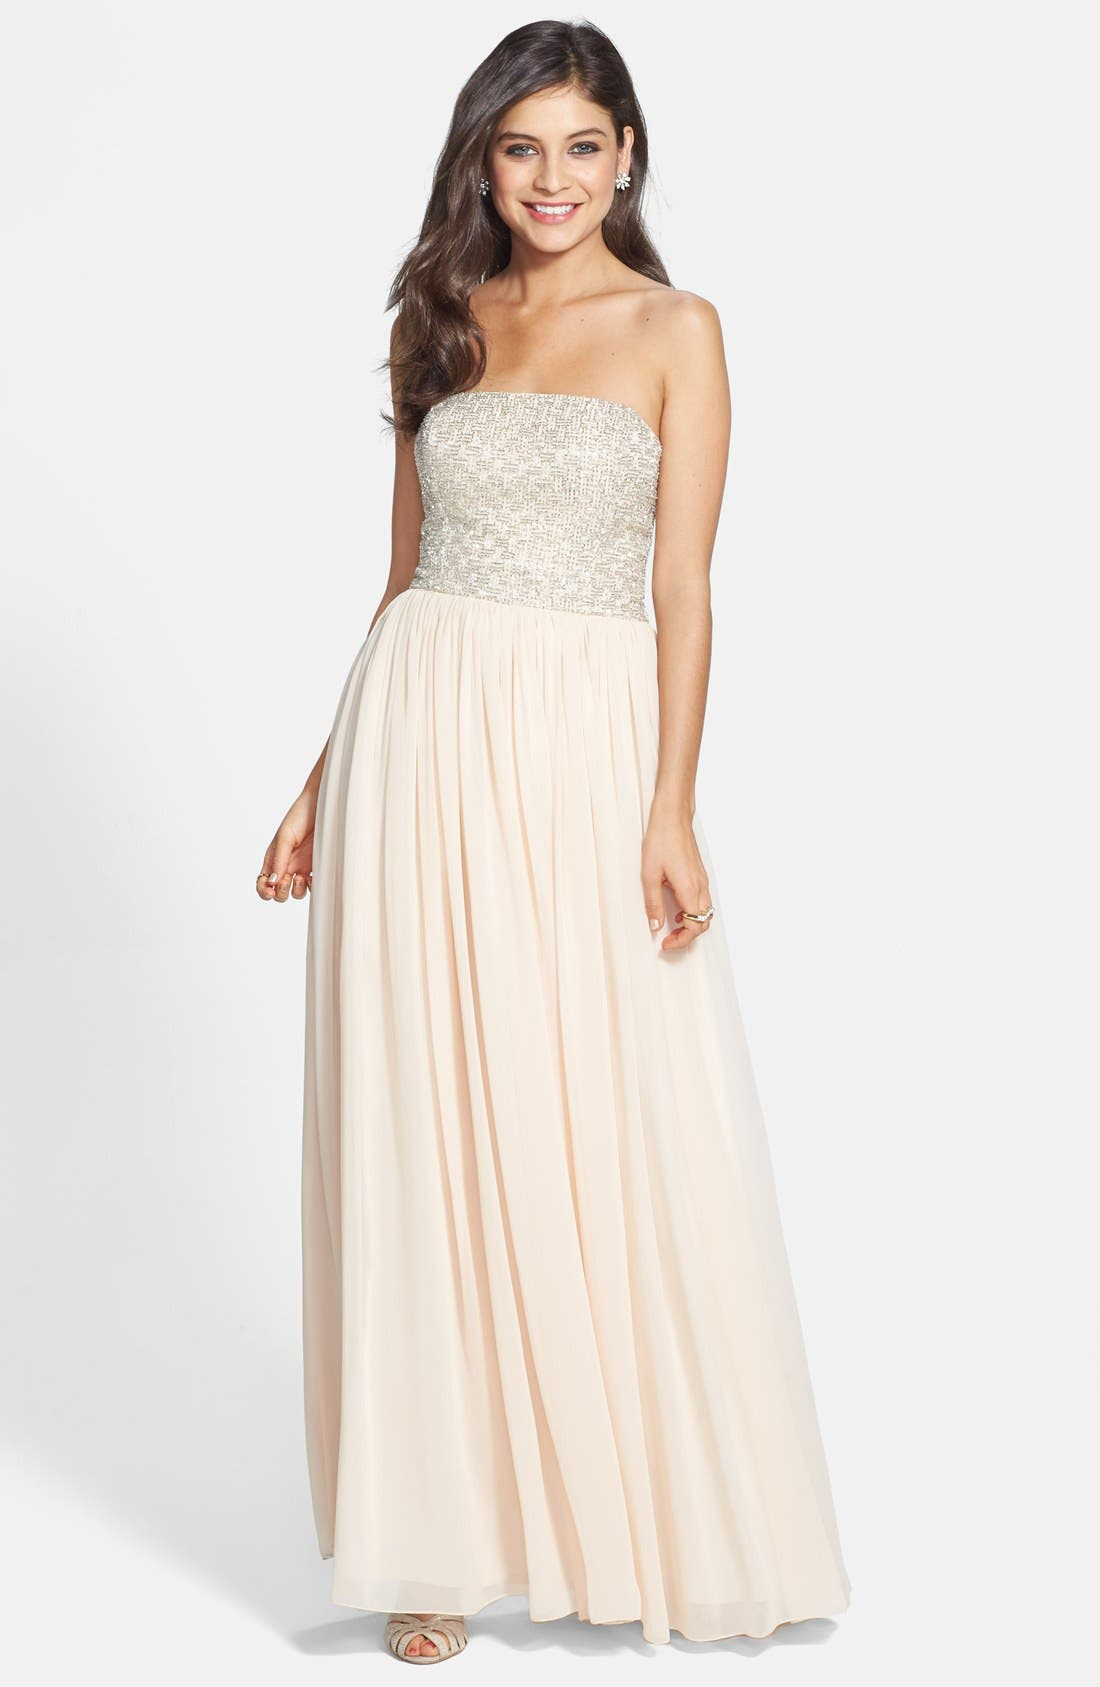 Alternate Image 1 Selected - Aidan Maddox Beaded Bodice Strapless Gown